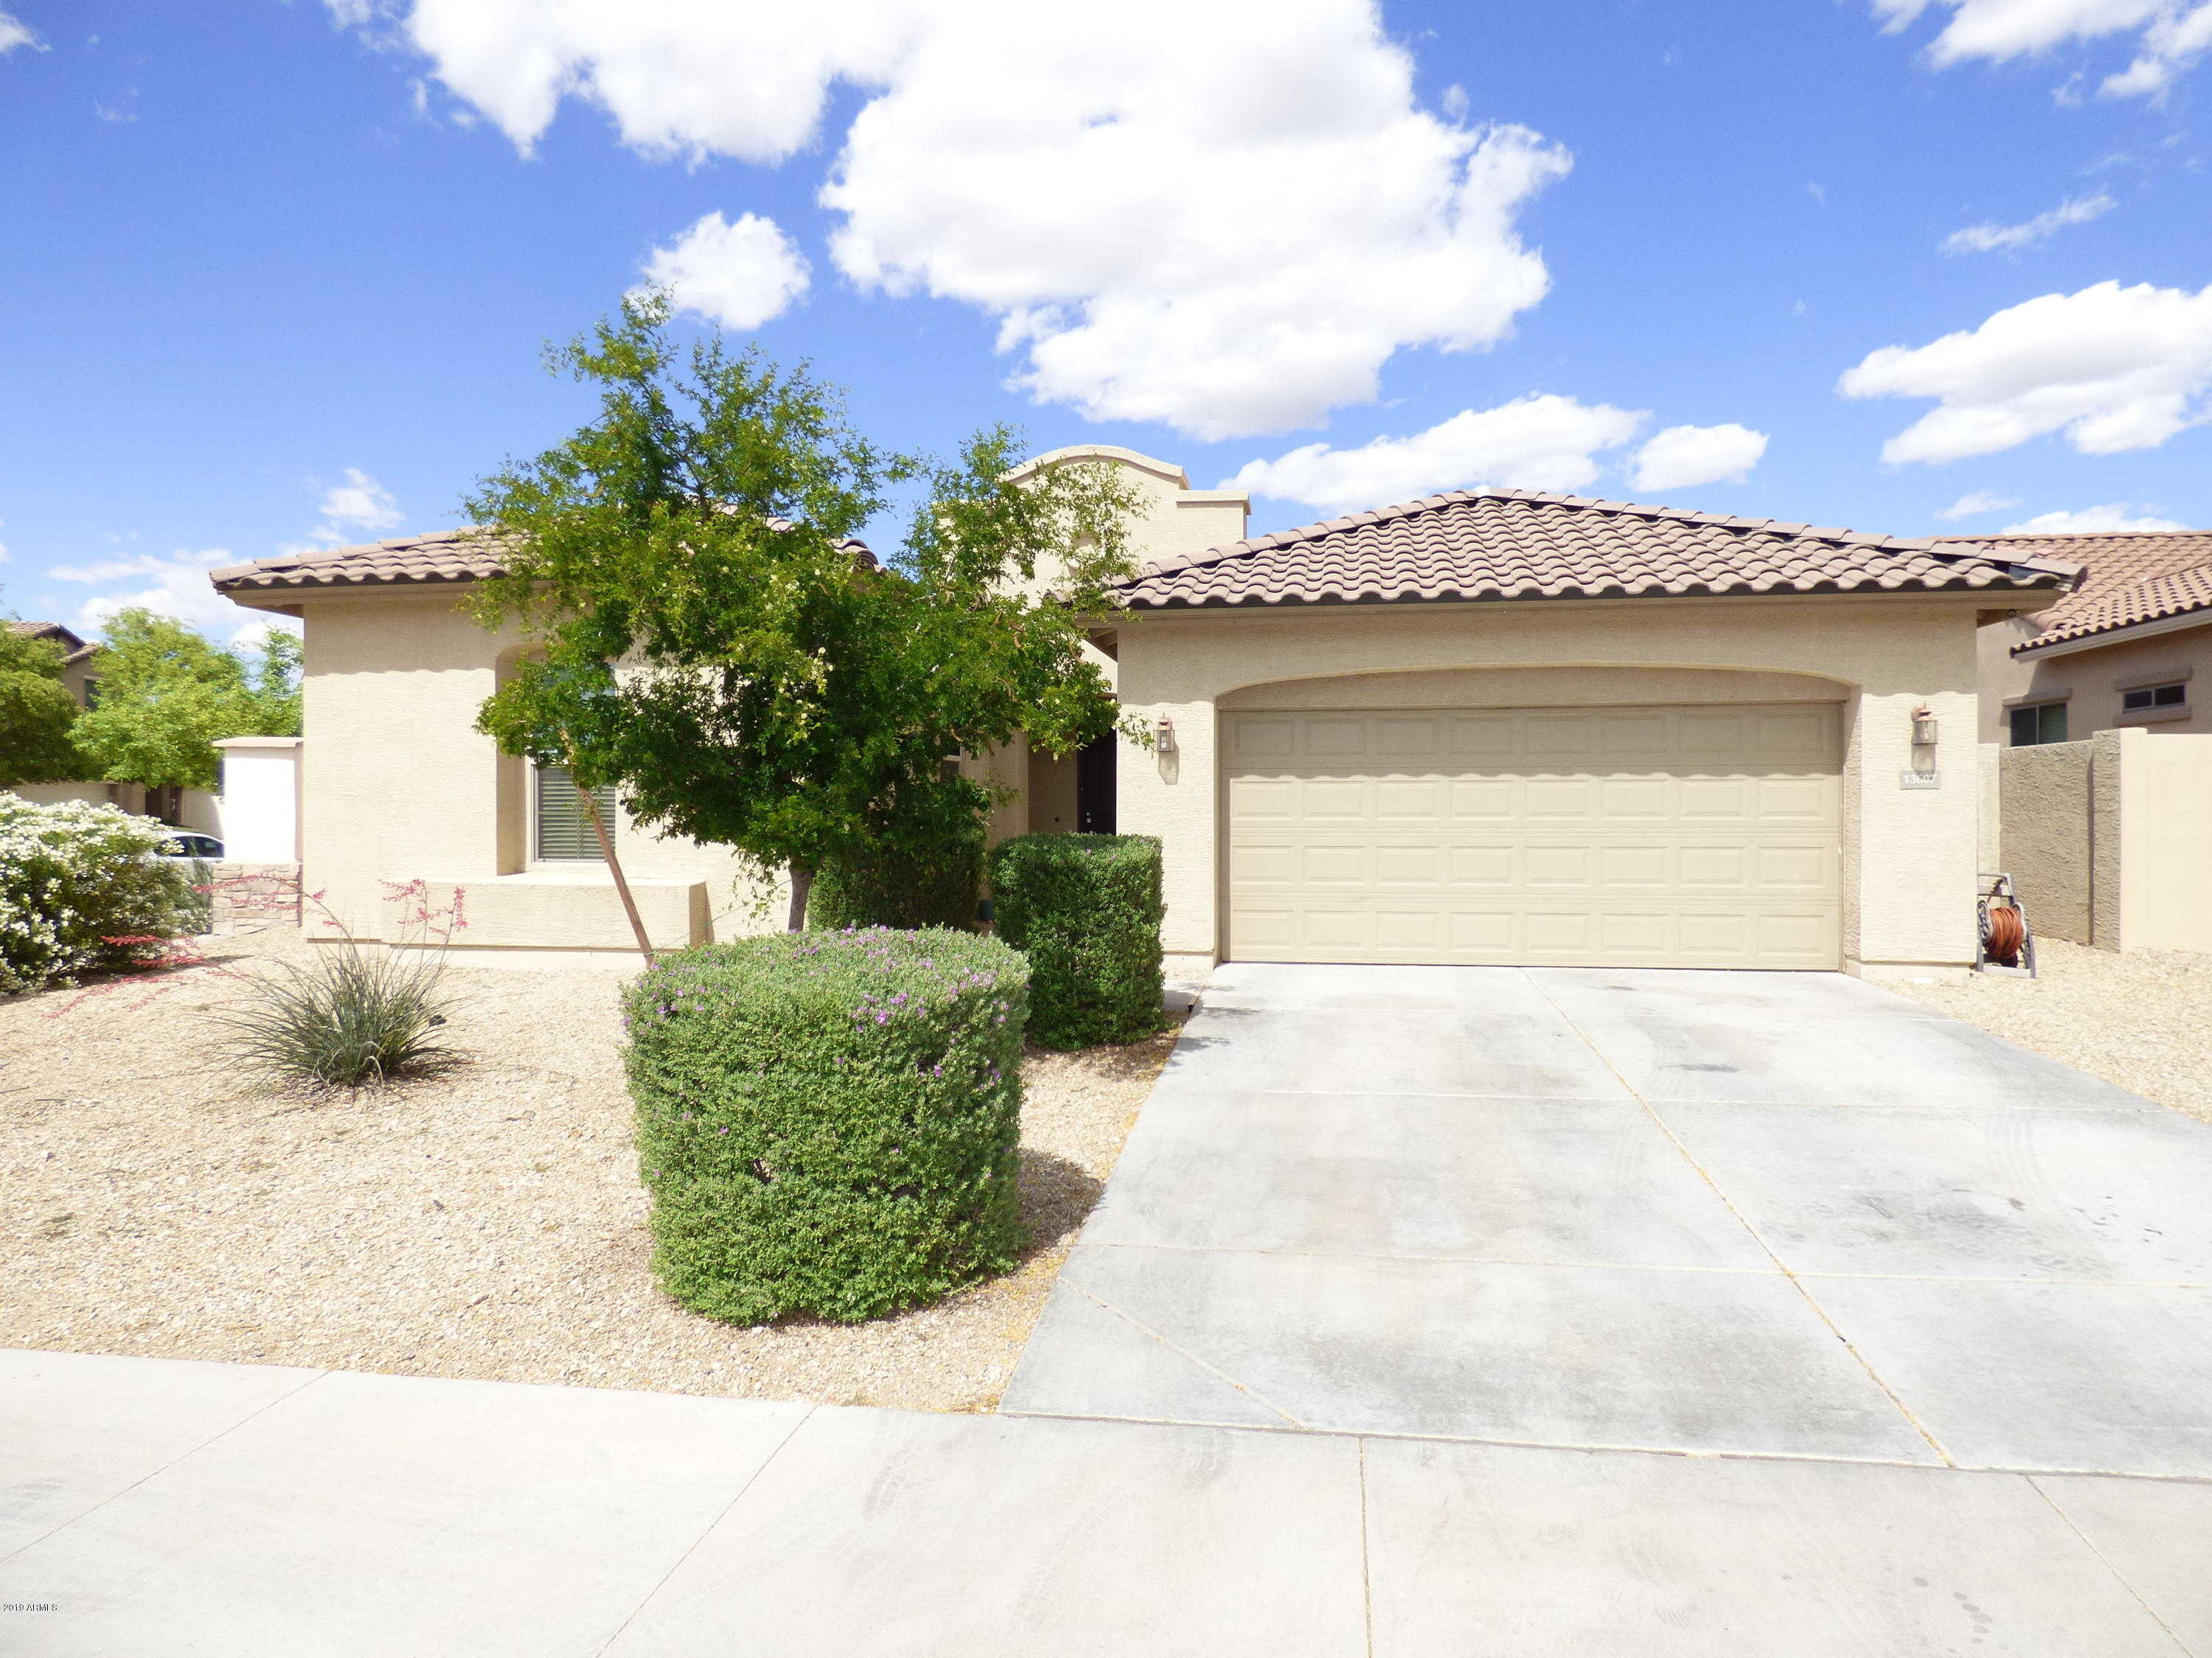 $299,896 - 4Br/2Ba - Home for Sale in Coronado Village At Estrella Mtn Ranch Parcel 7.2, Goodyear